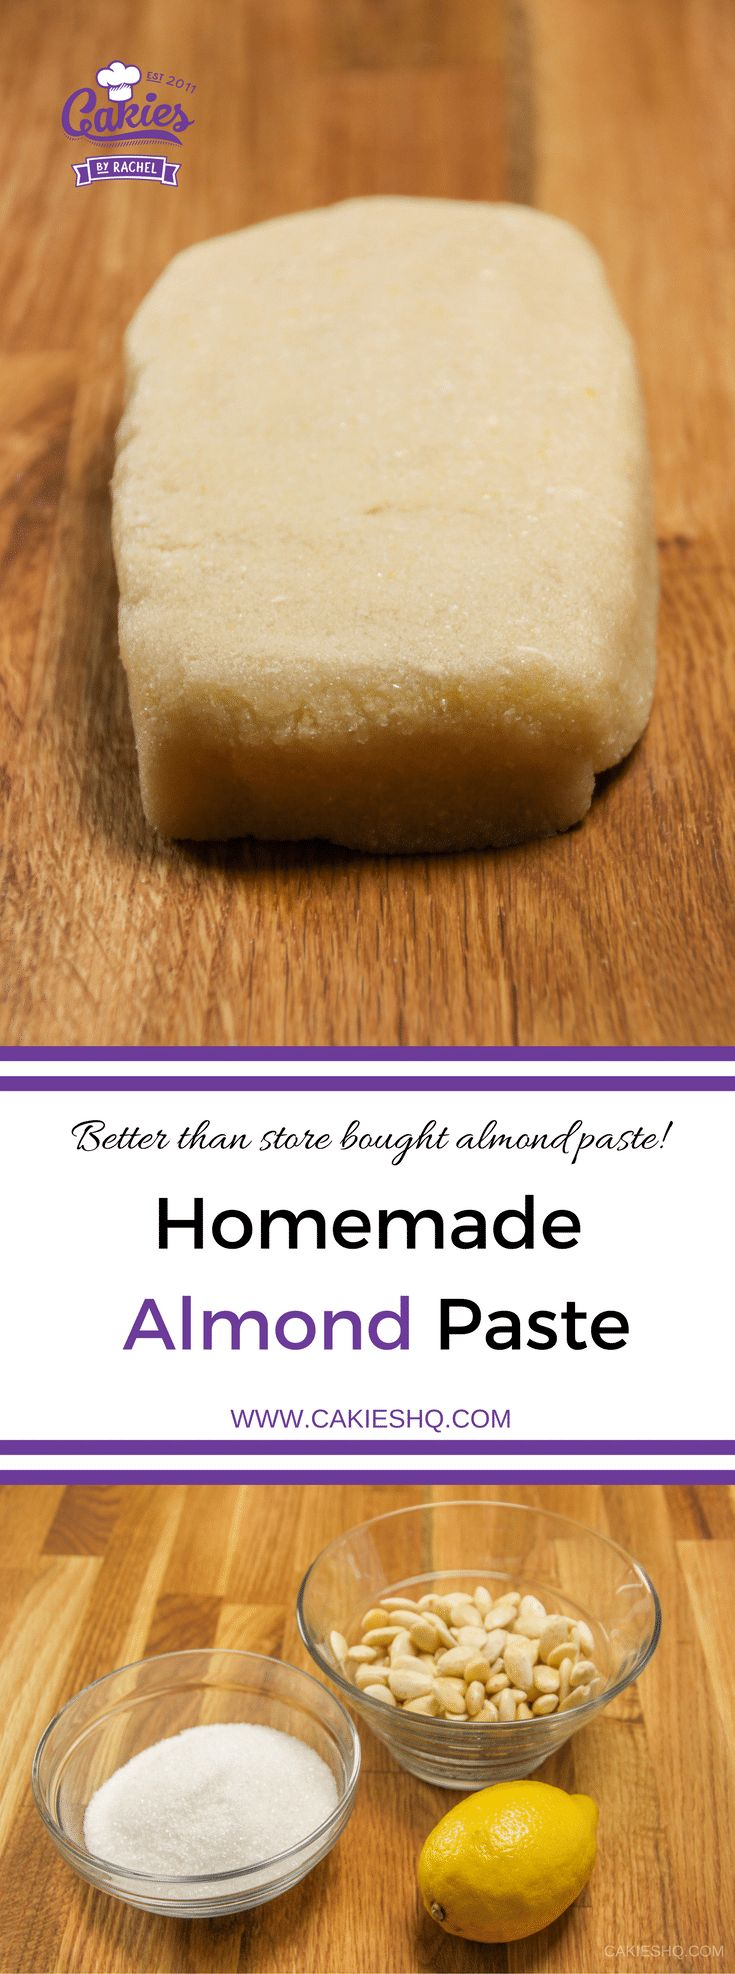 279 Best Koken Images On Pinterest Sosis Ayam By Solo Mommy Ui Homemade Almond Paste